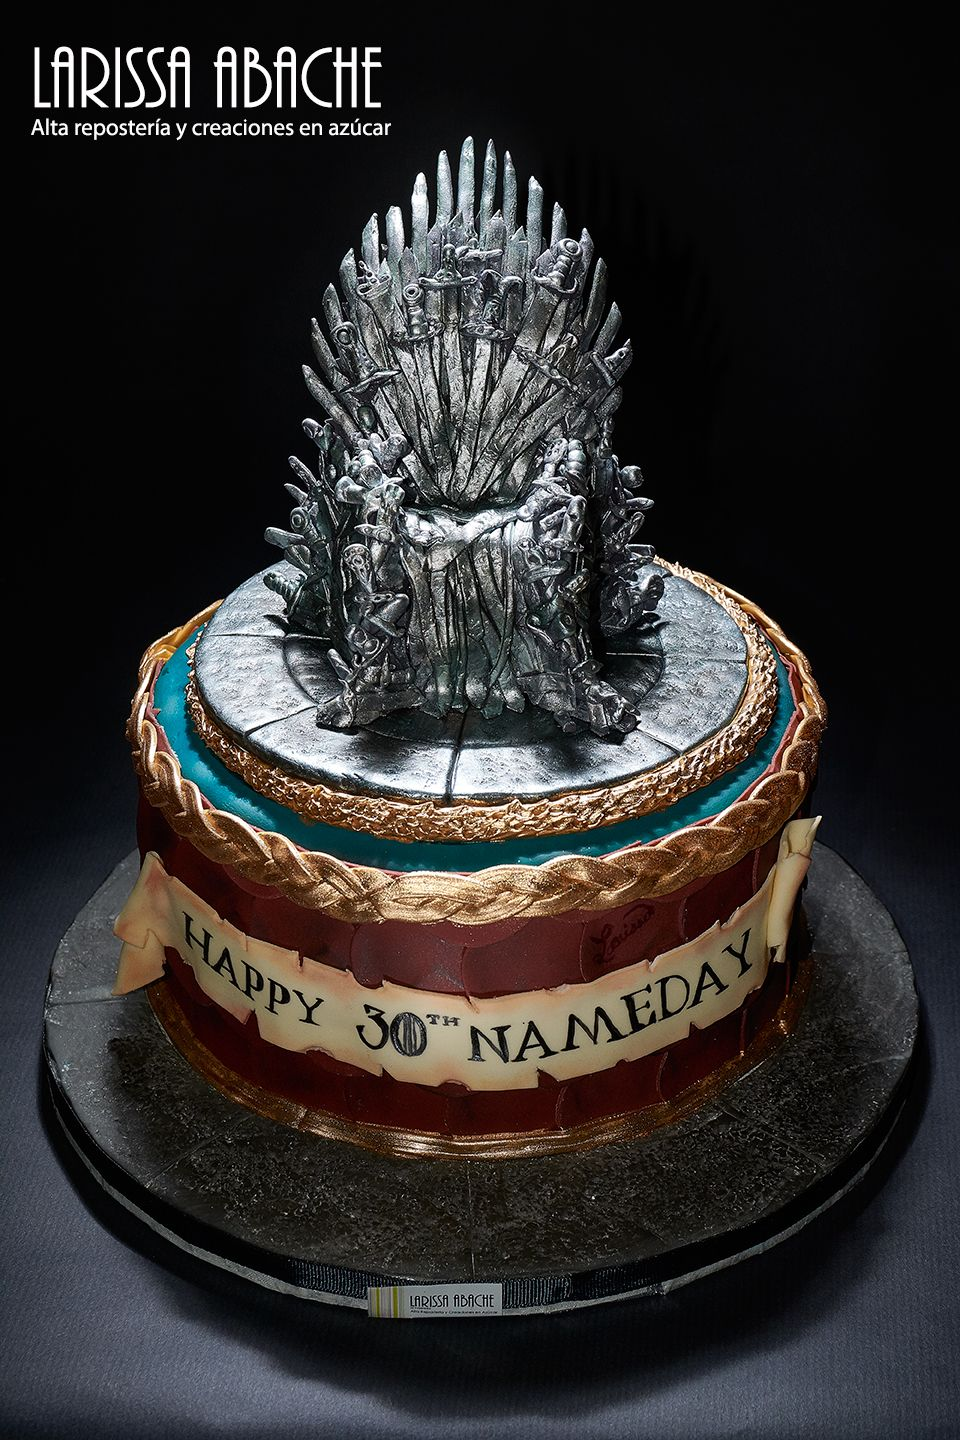 game of thrones cake una super tarta de juego de tronos. Black Bedroom Furniture Sets. Home Design Ideas